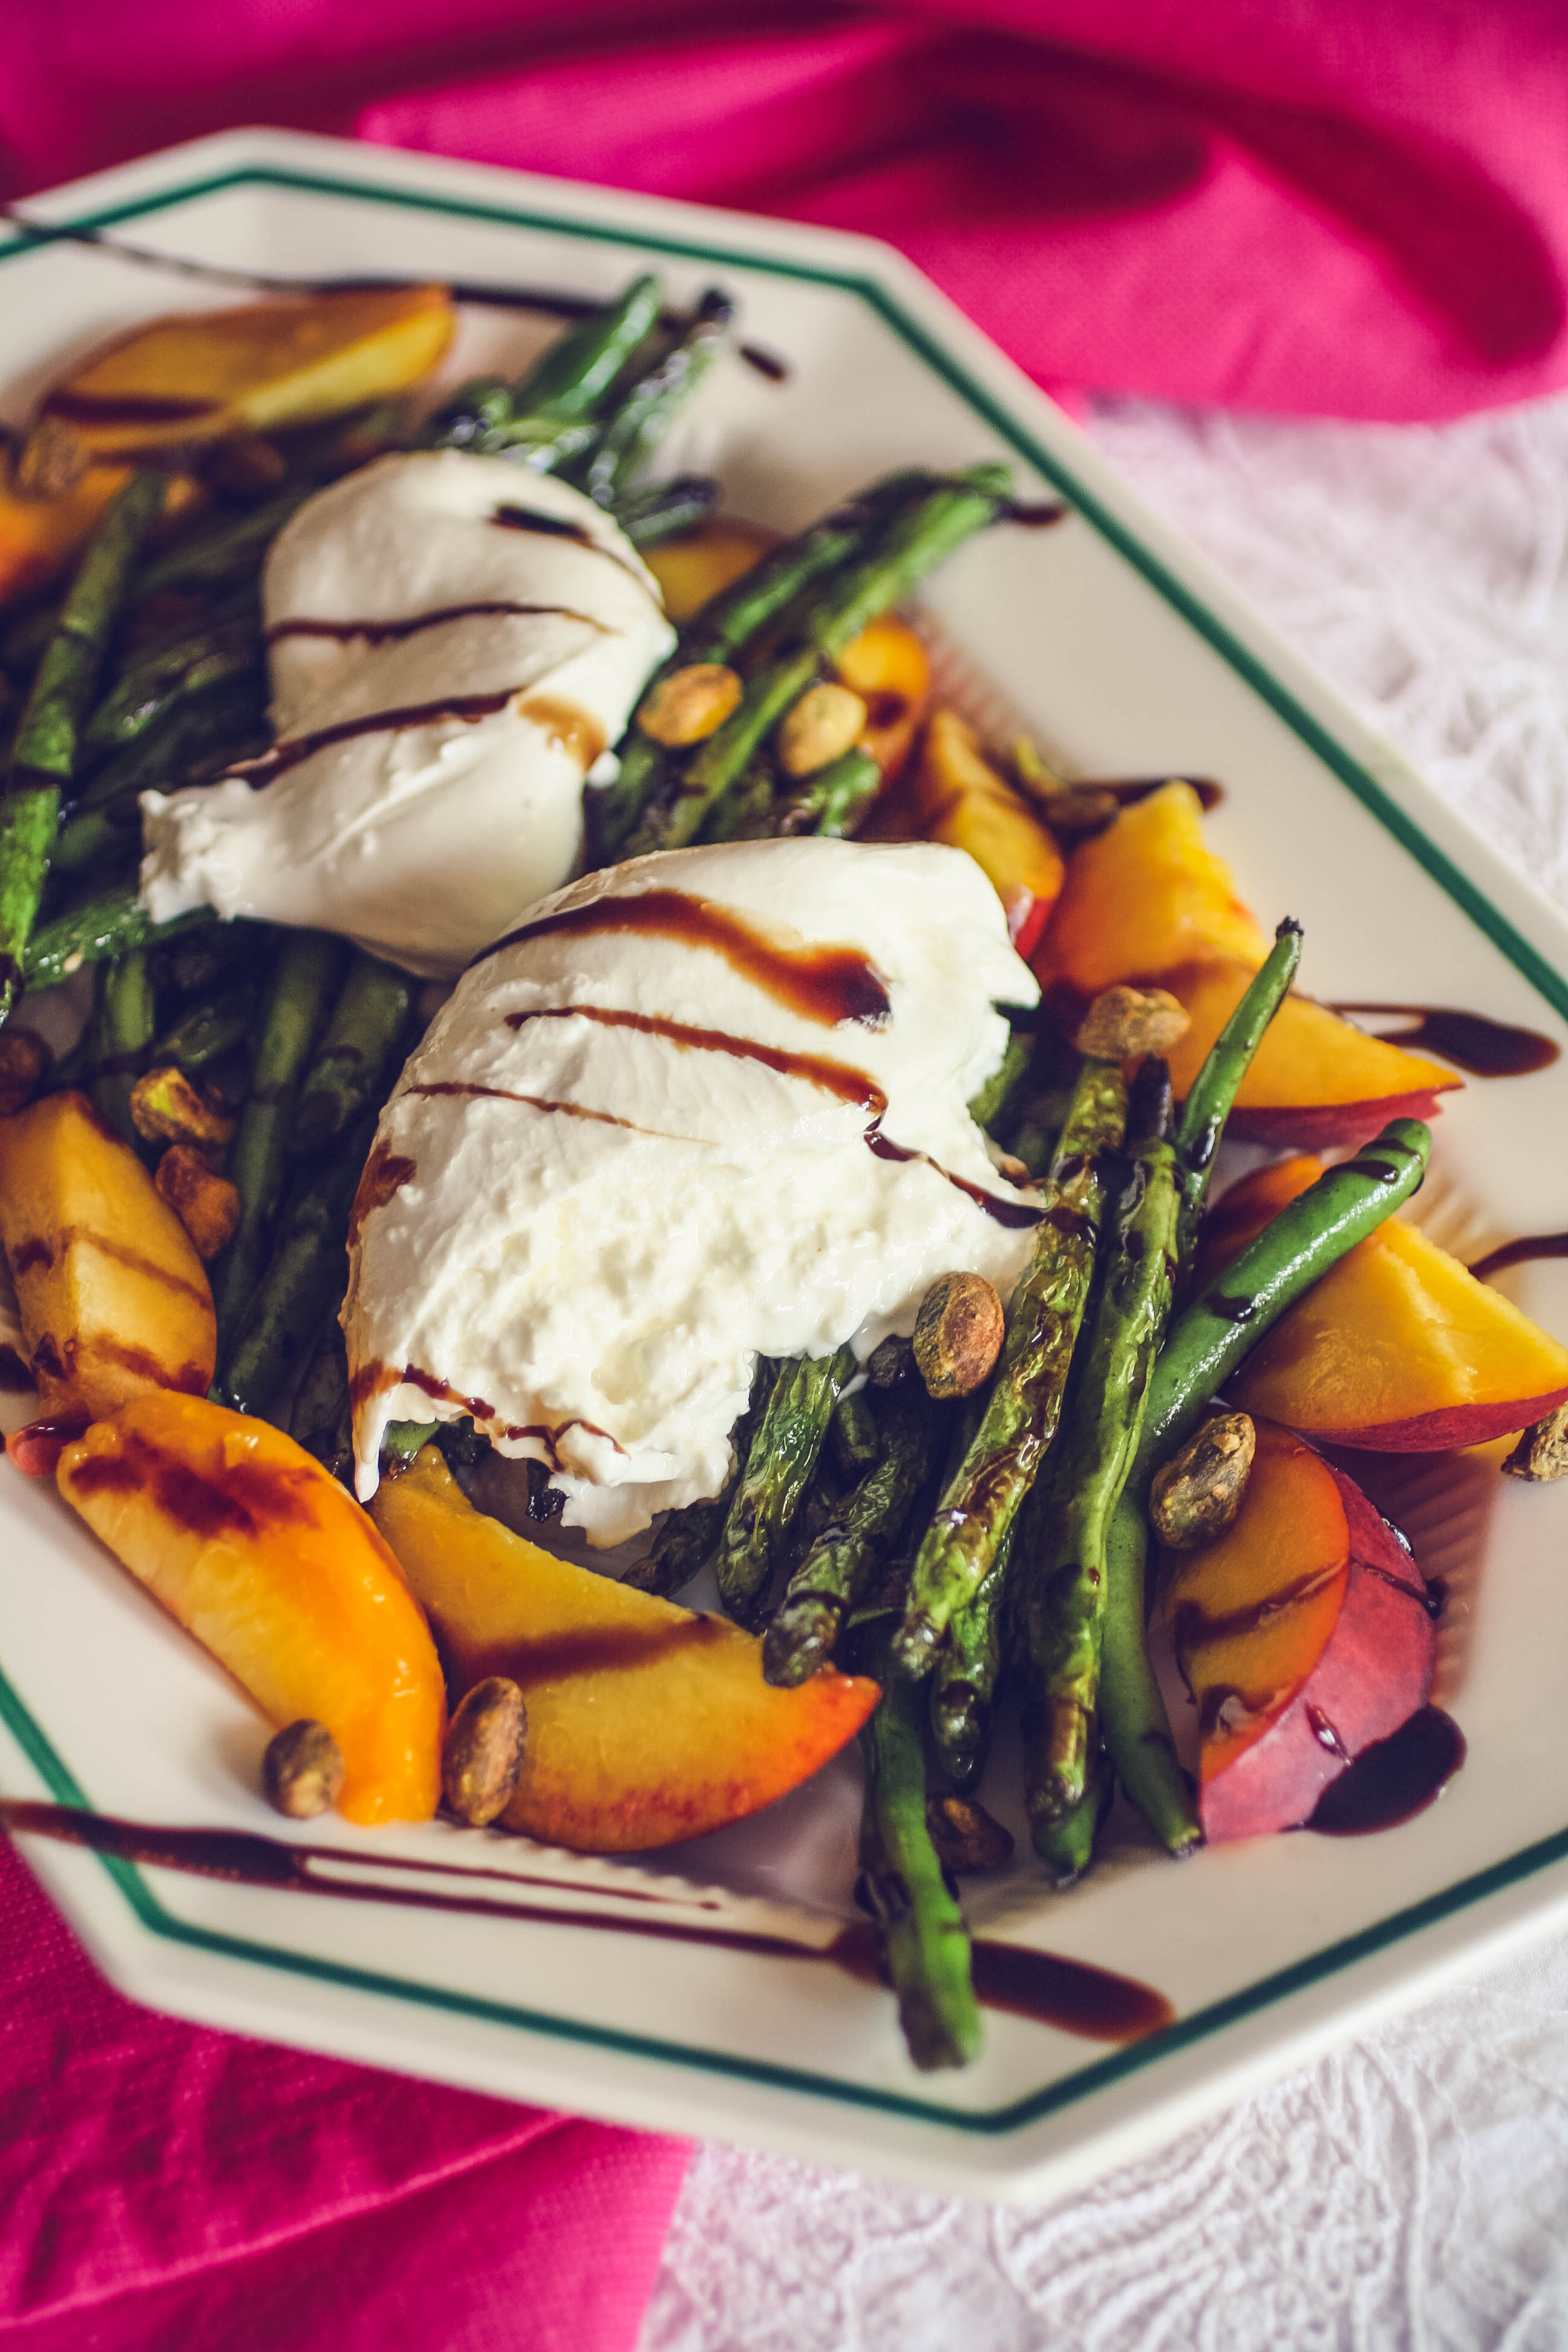 Charred Green Beans with Burrata and Peaches is a fun summer salad. Charred Green Beans with Burrata and Peaches is a delightful salad for the summer season.